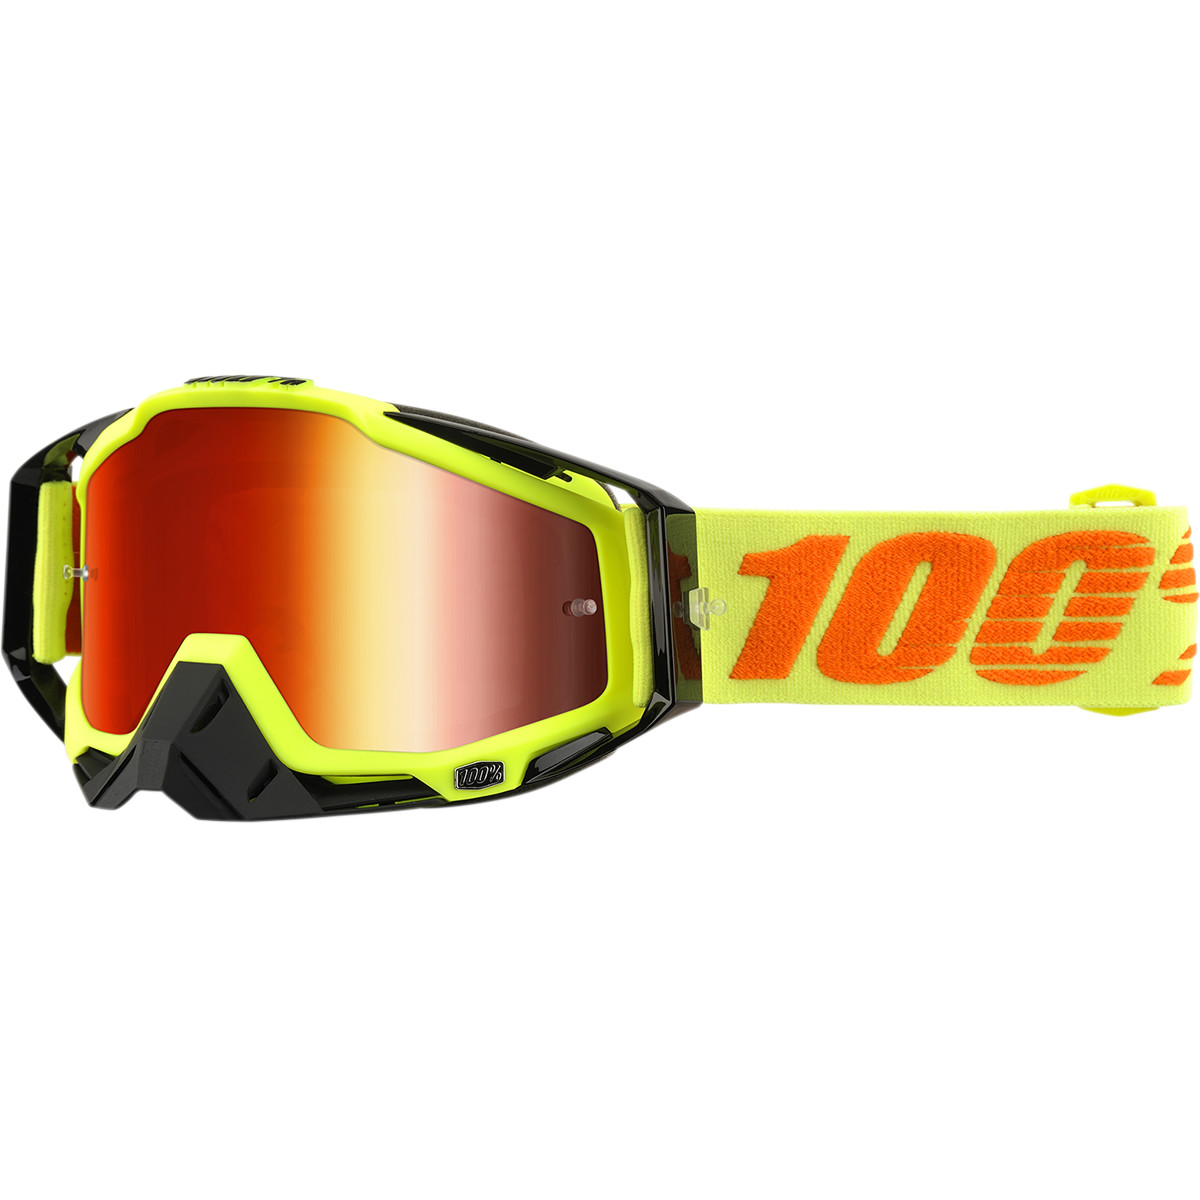 racecraft goggles [2601-2049] 1